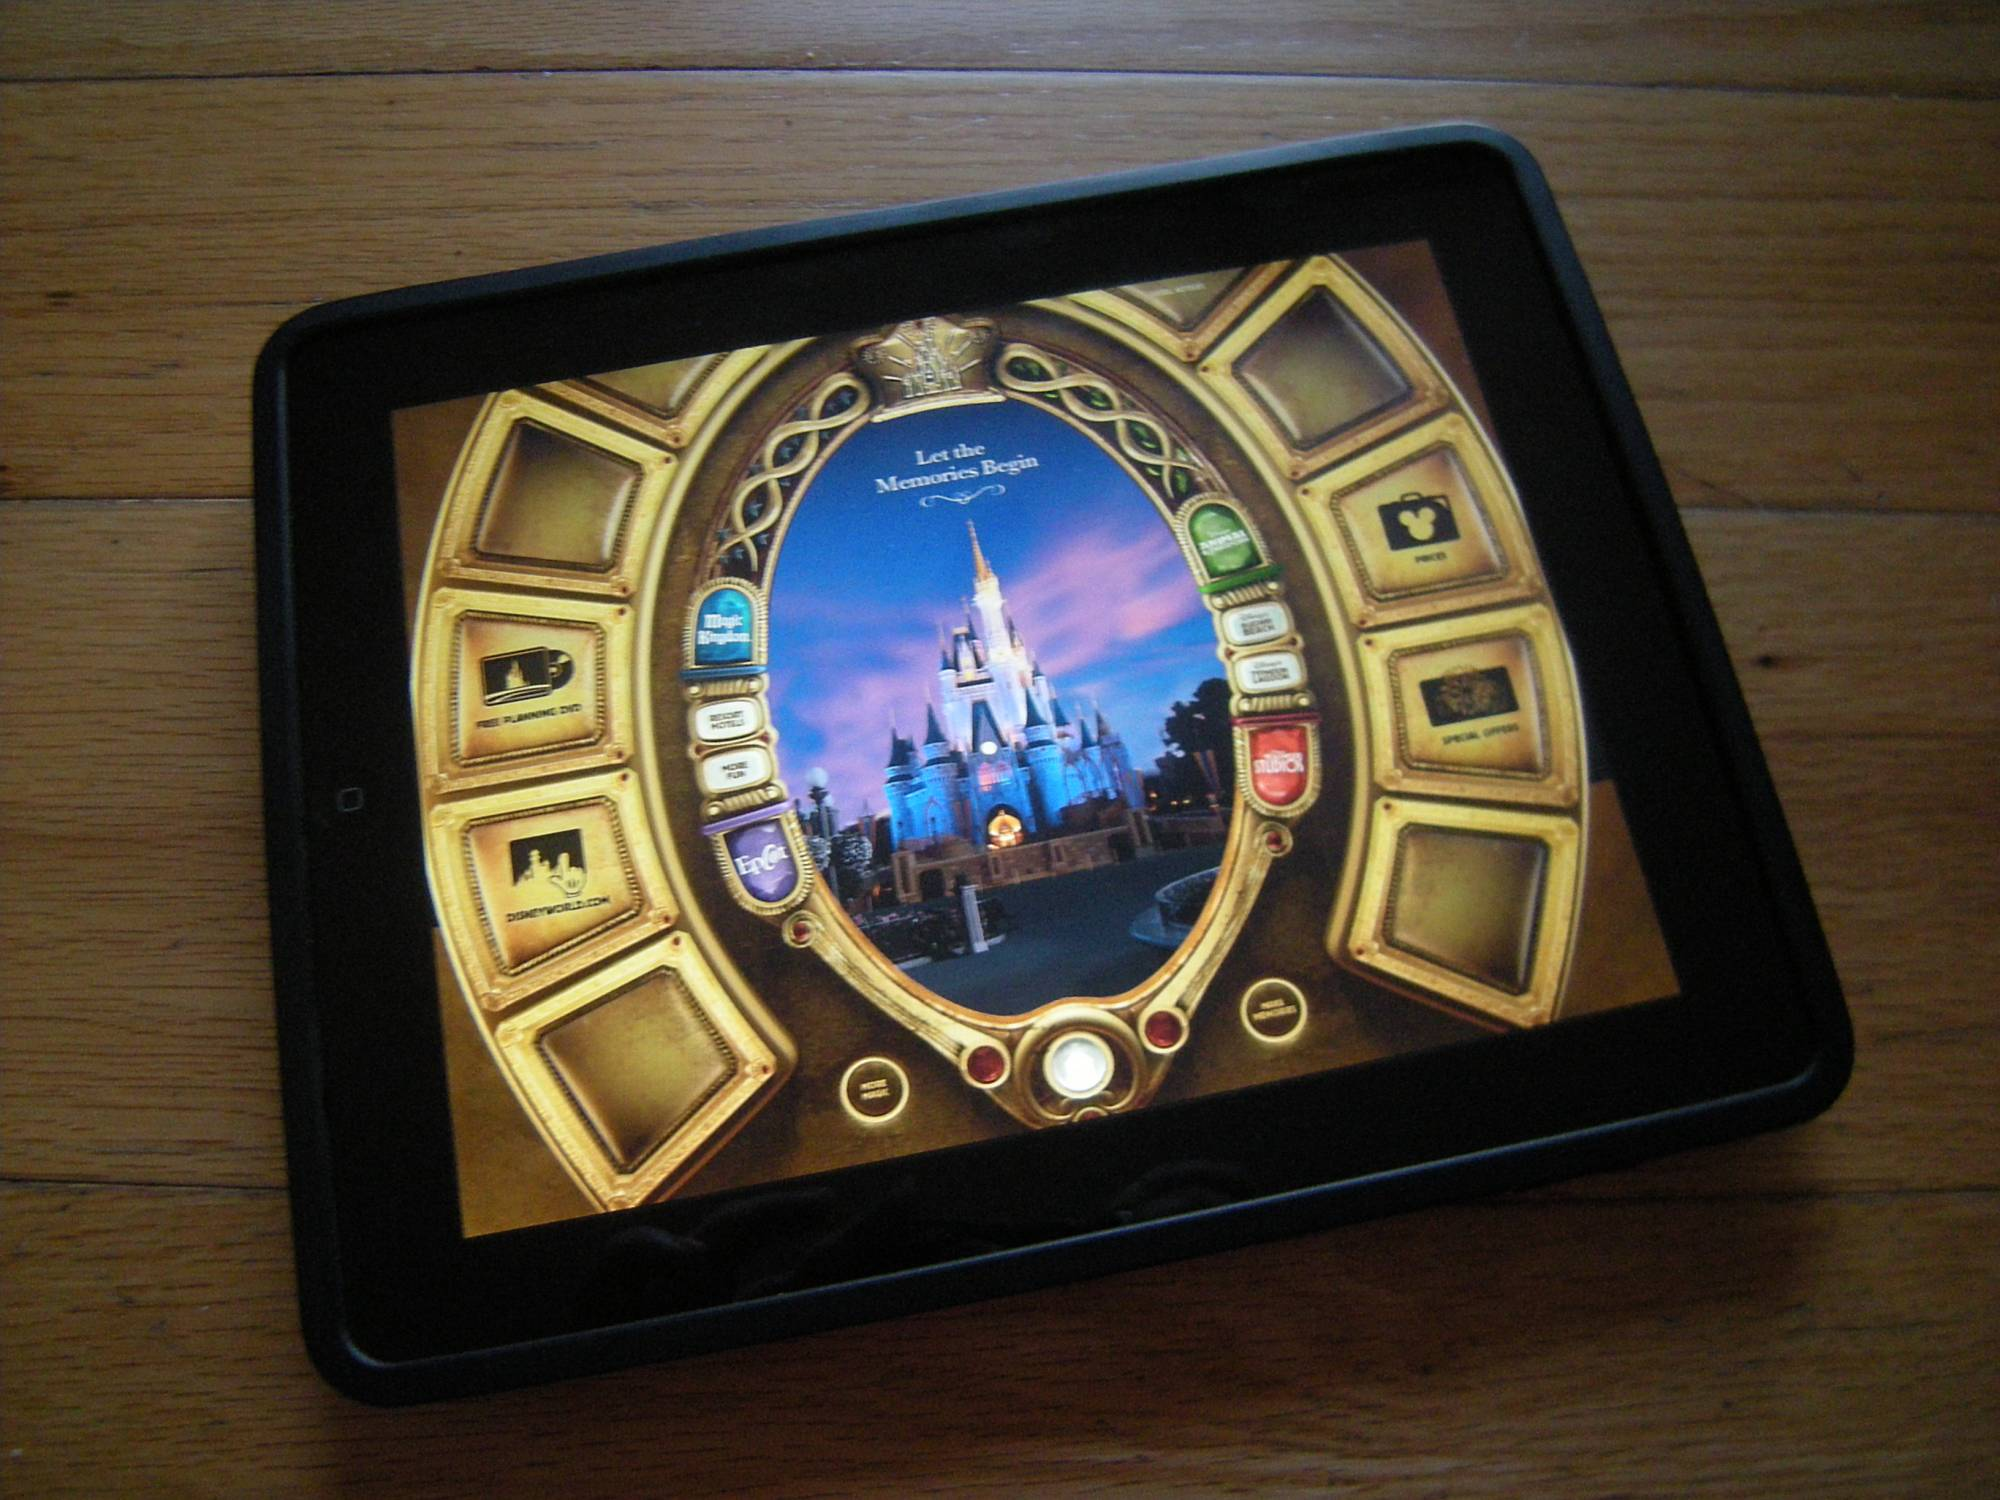 Discover which apps can help make planning your Walt Disney World vacation easier |PassPorter.com